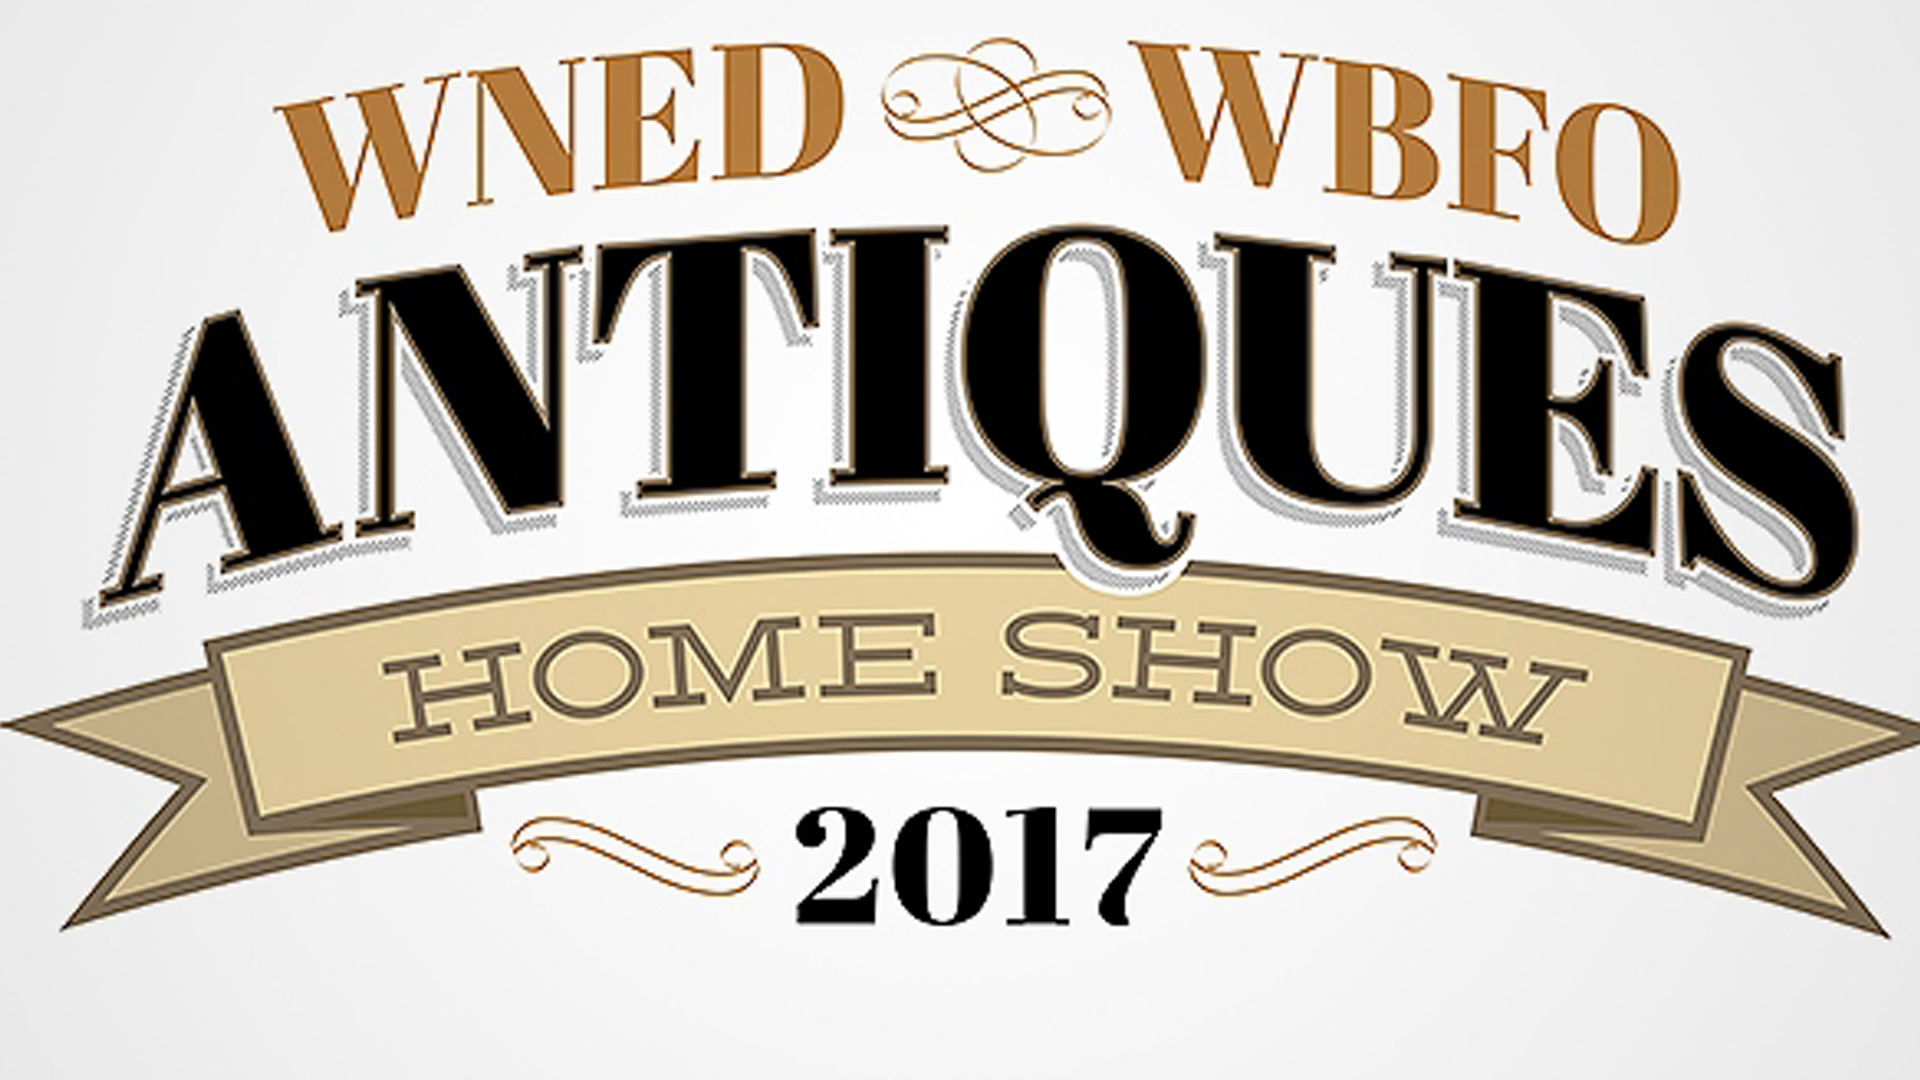 WNED | WBFO Antiques Home Show Returns May 20th!